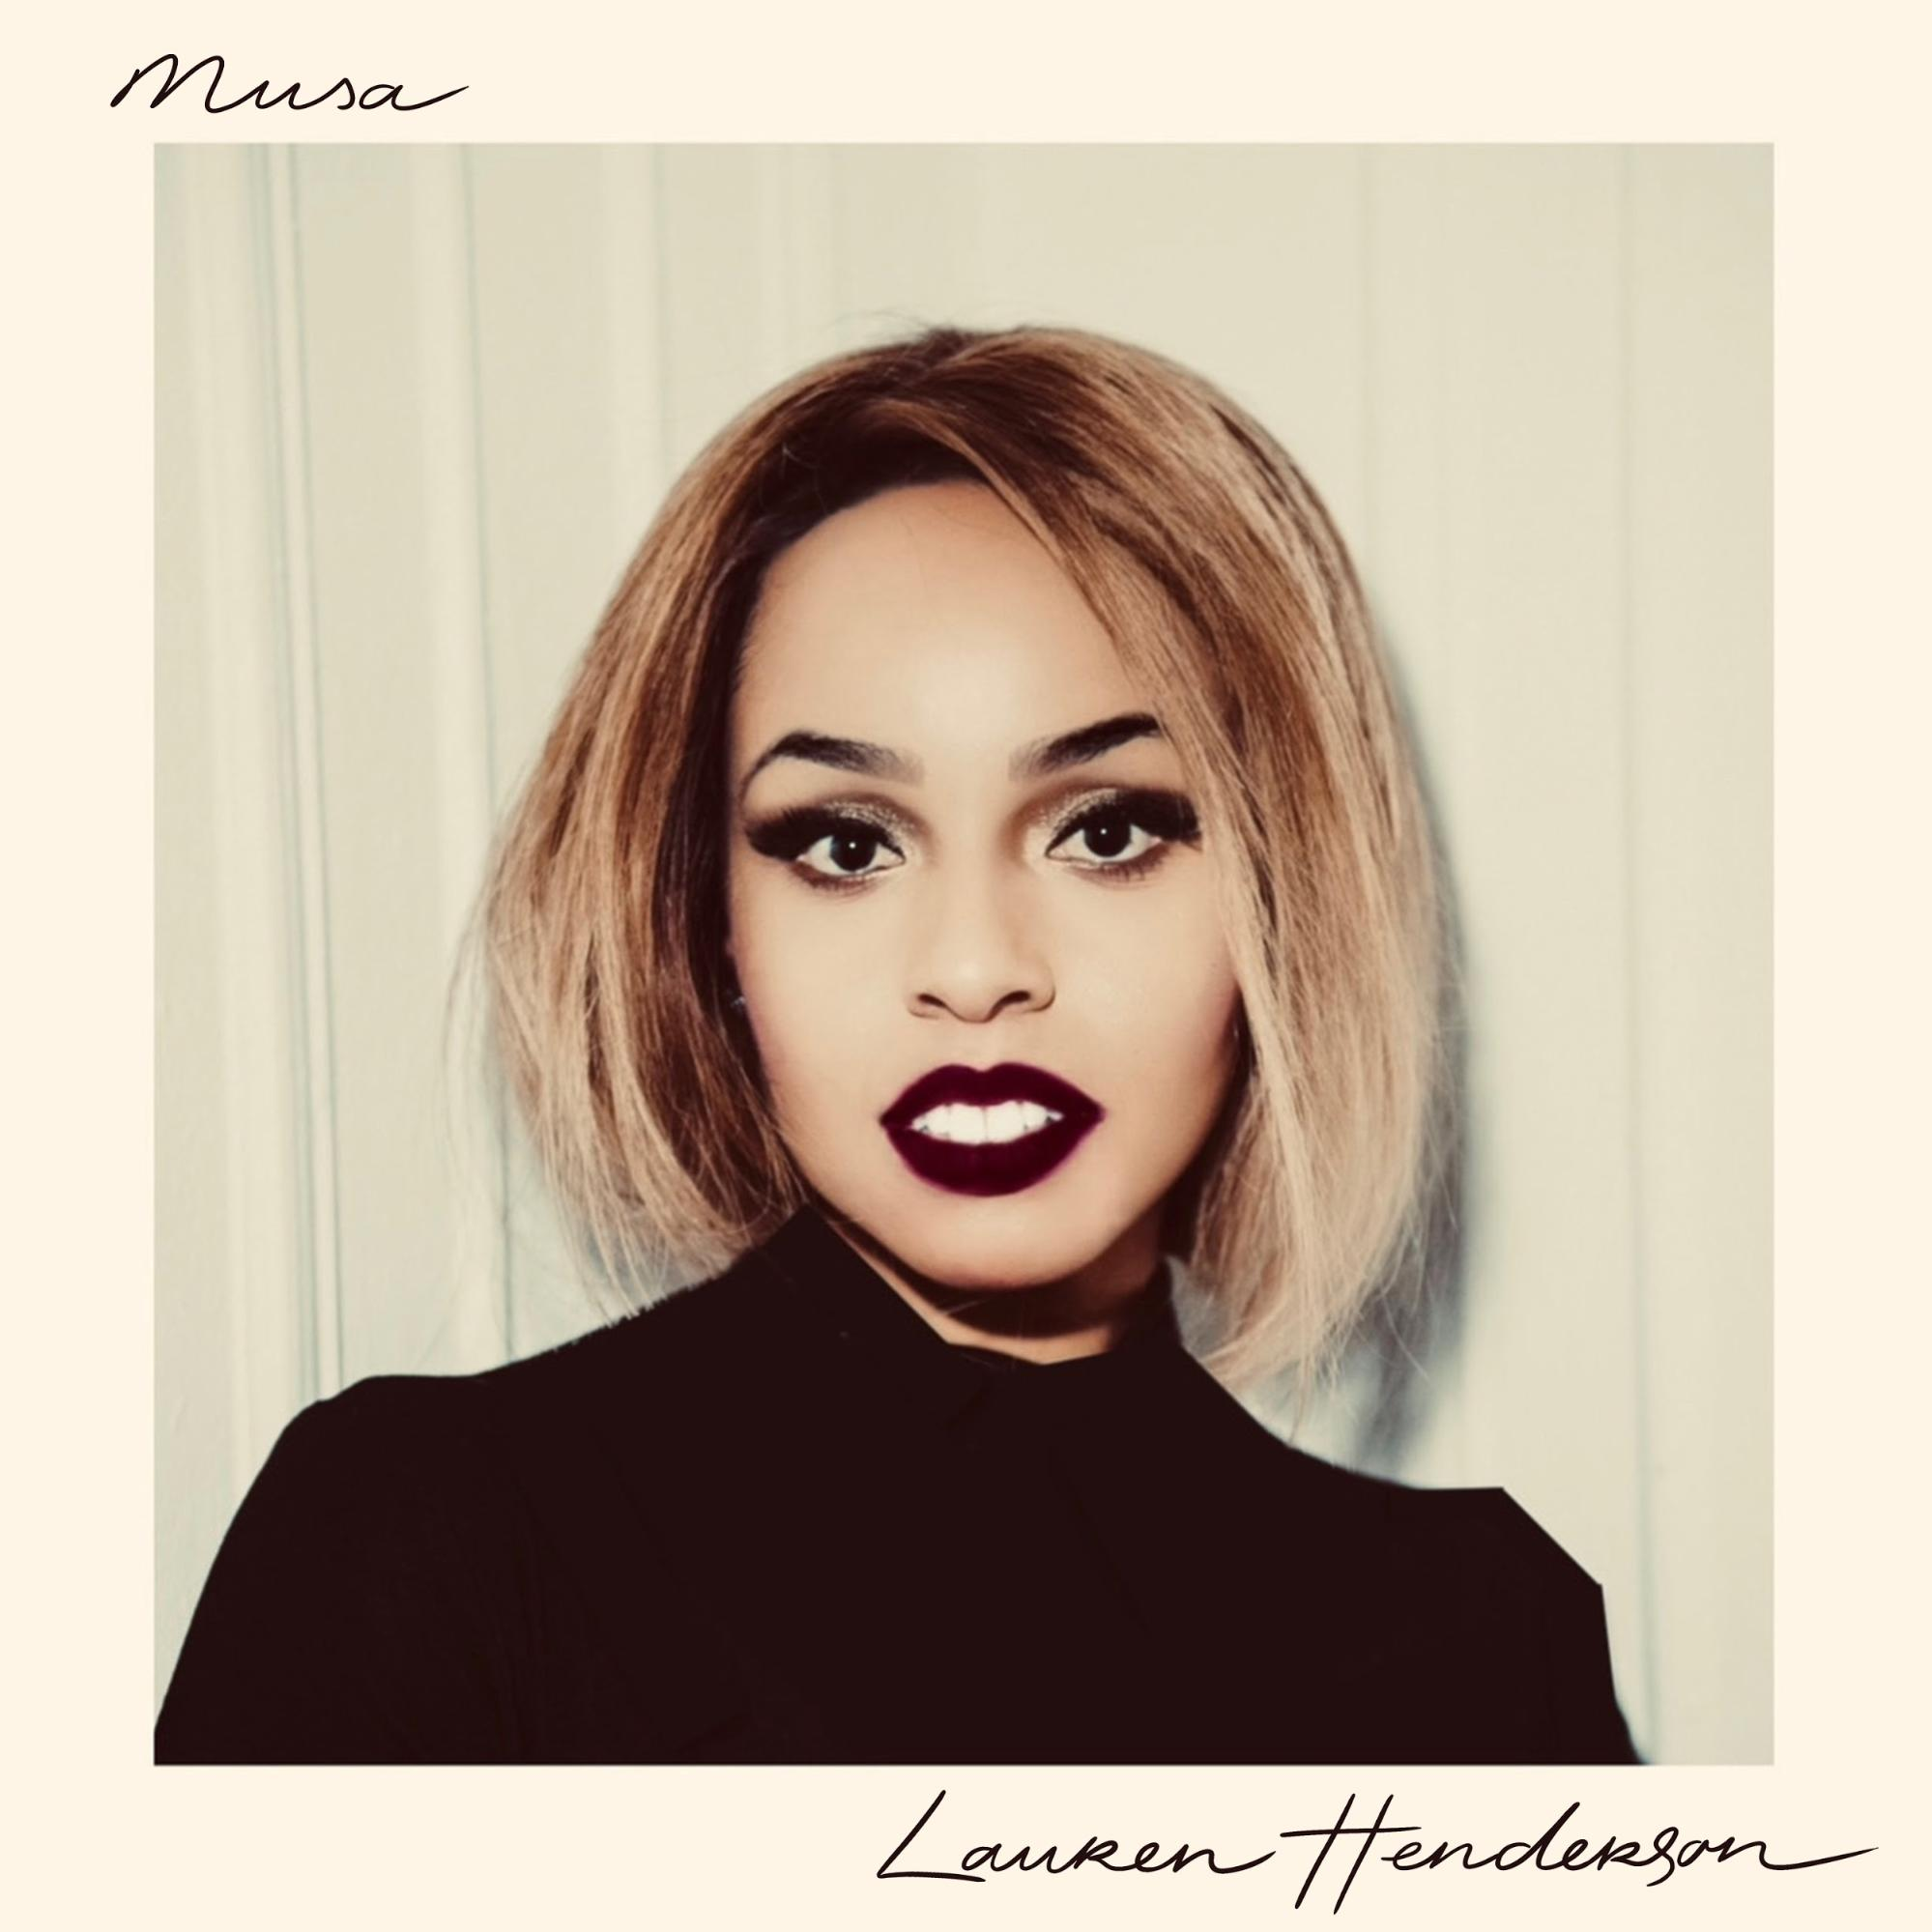 NEW RELEASE: Award-Winning Singer Lauren Henderson Honors Heritage on New Album MUSA, due out June 11th, 2021 via Brontosaurus Records